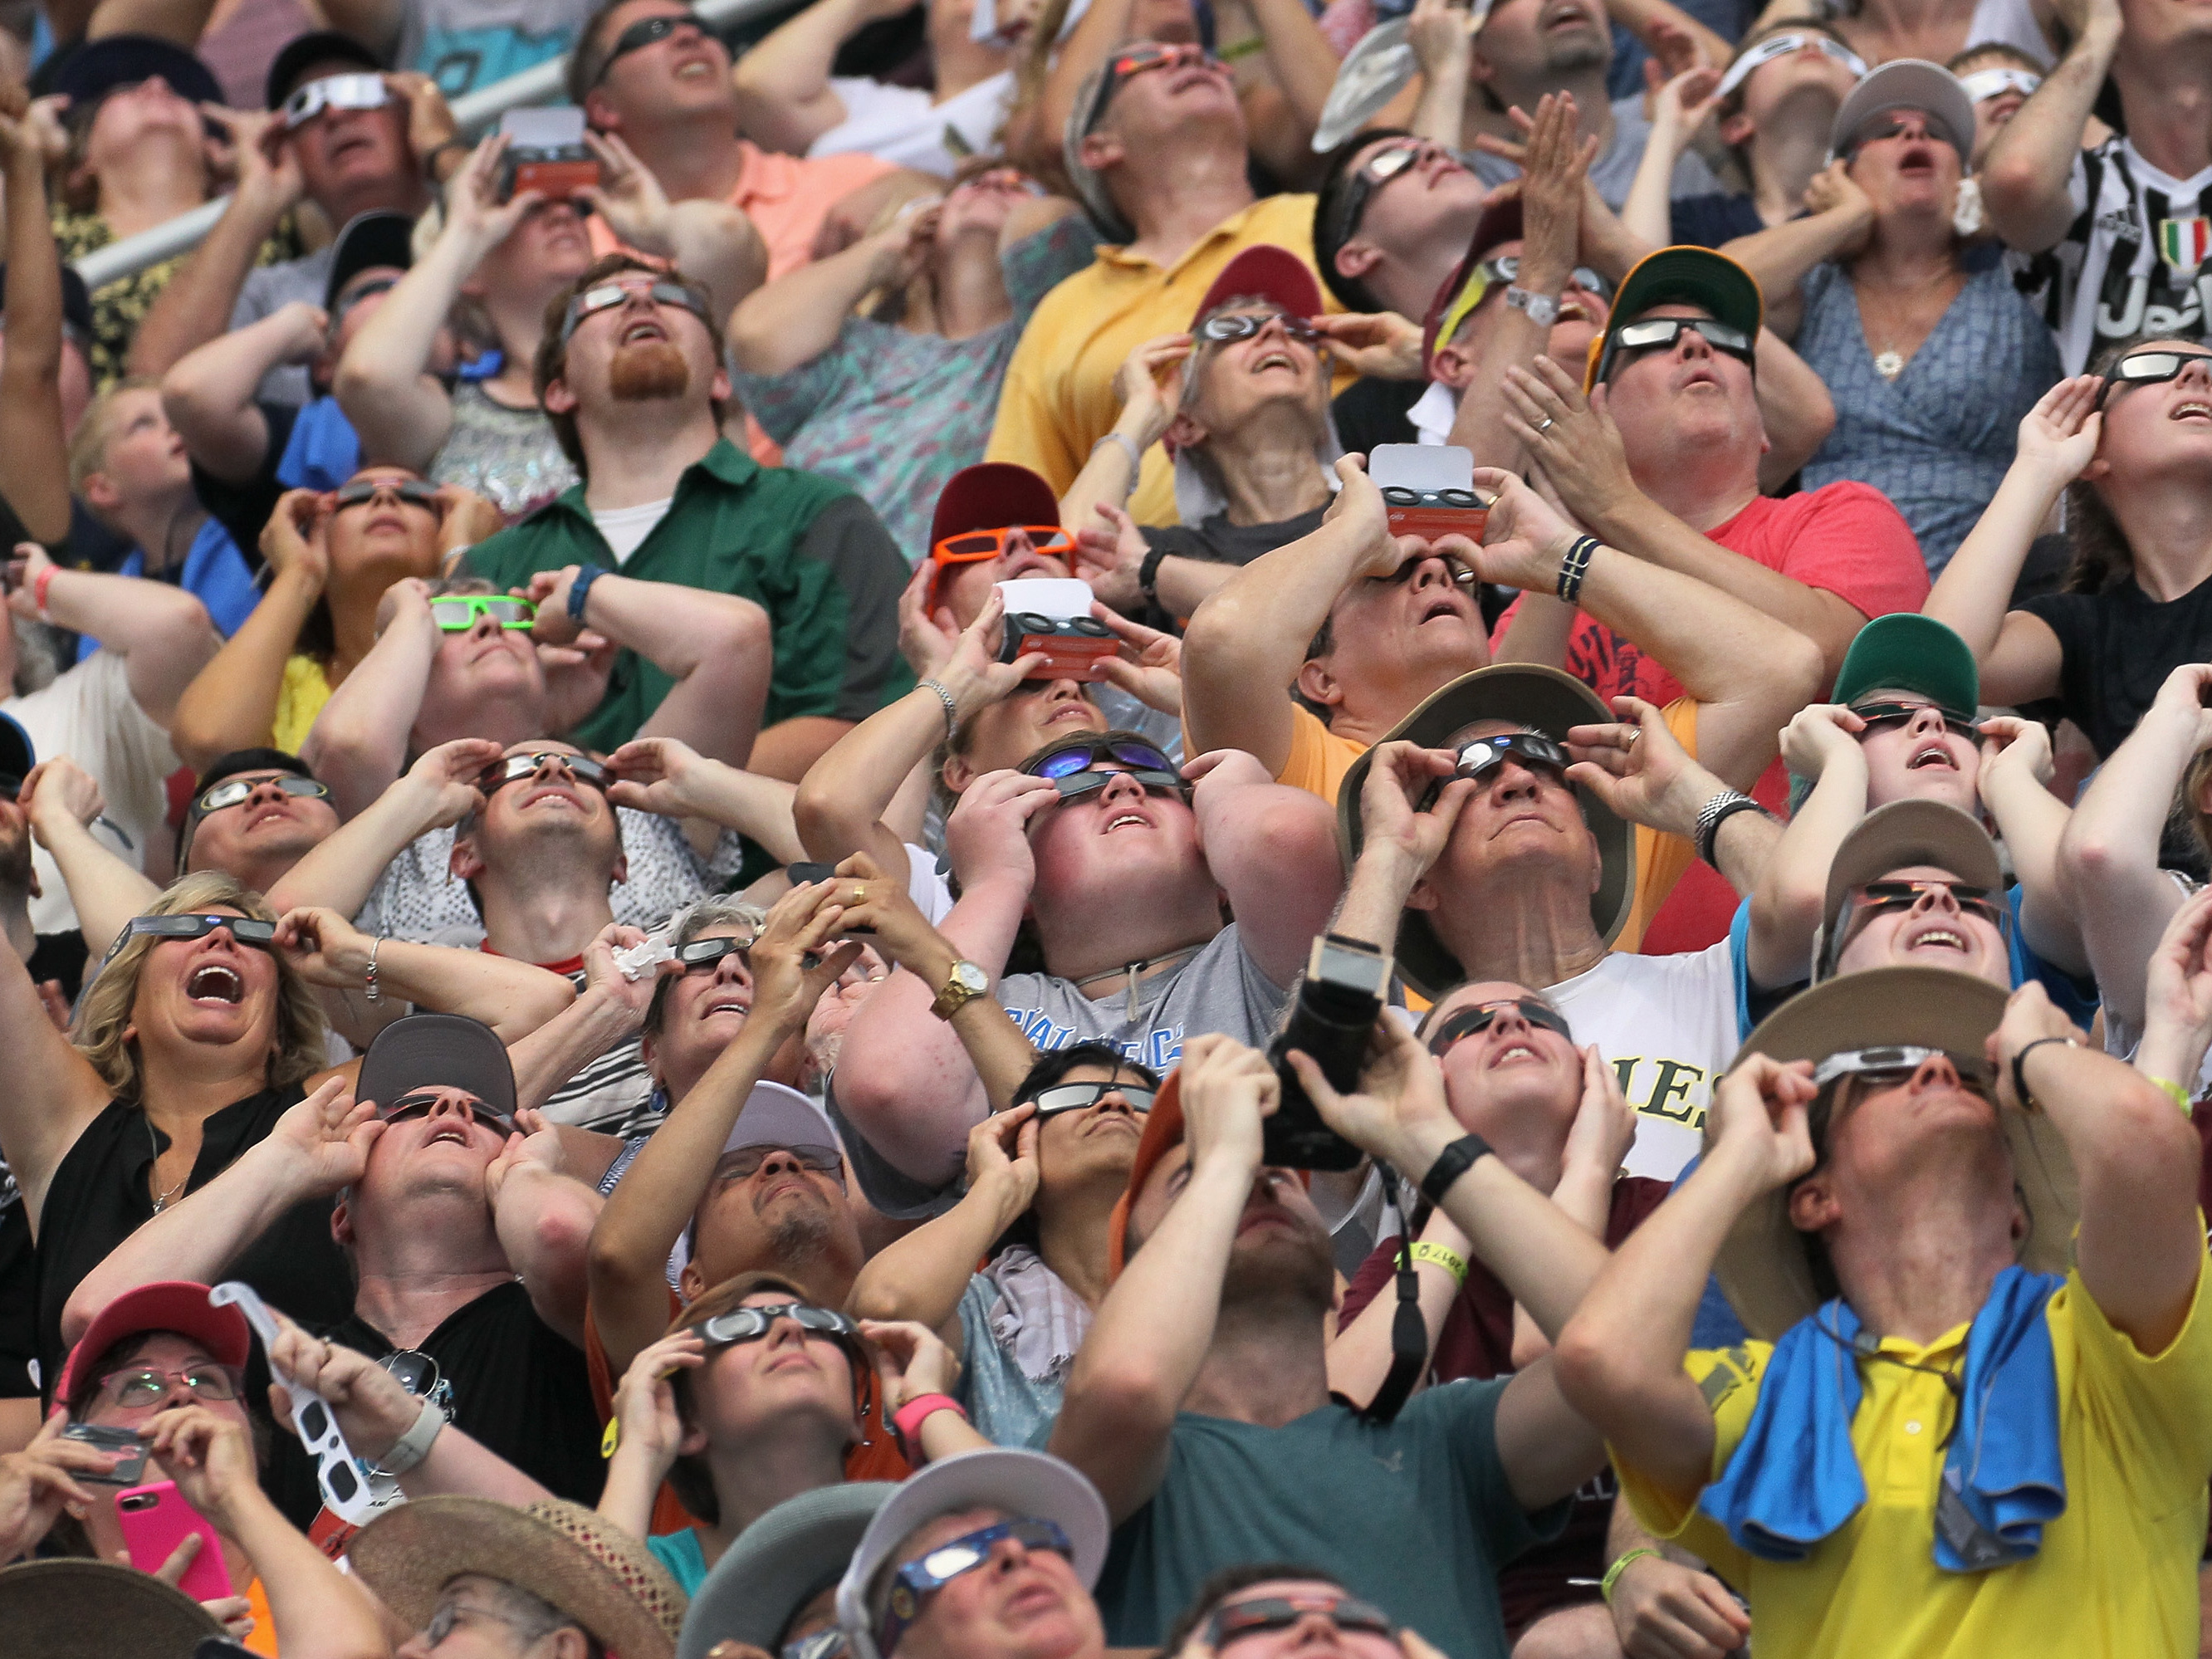 How To Tell If Watching The Eclipse Damaged Your Eyes